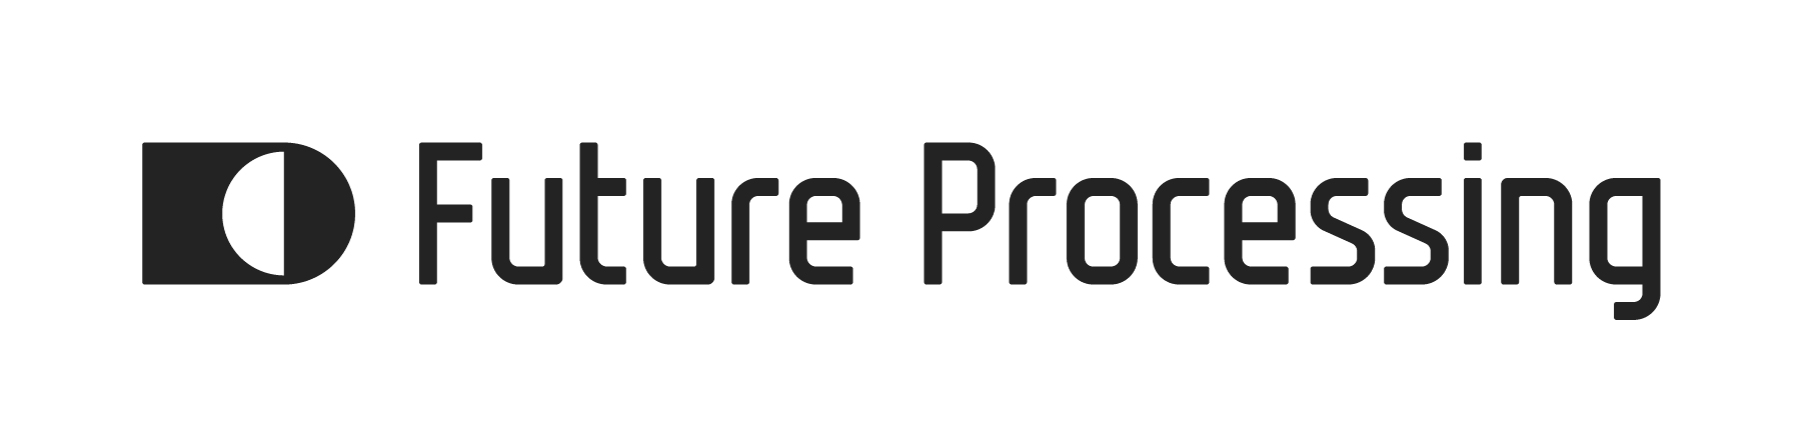 Logo Future Processing